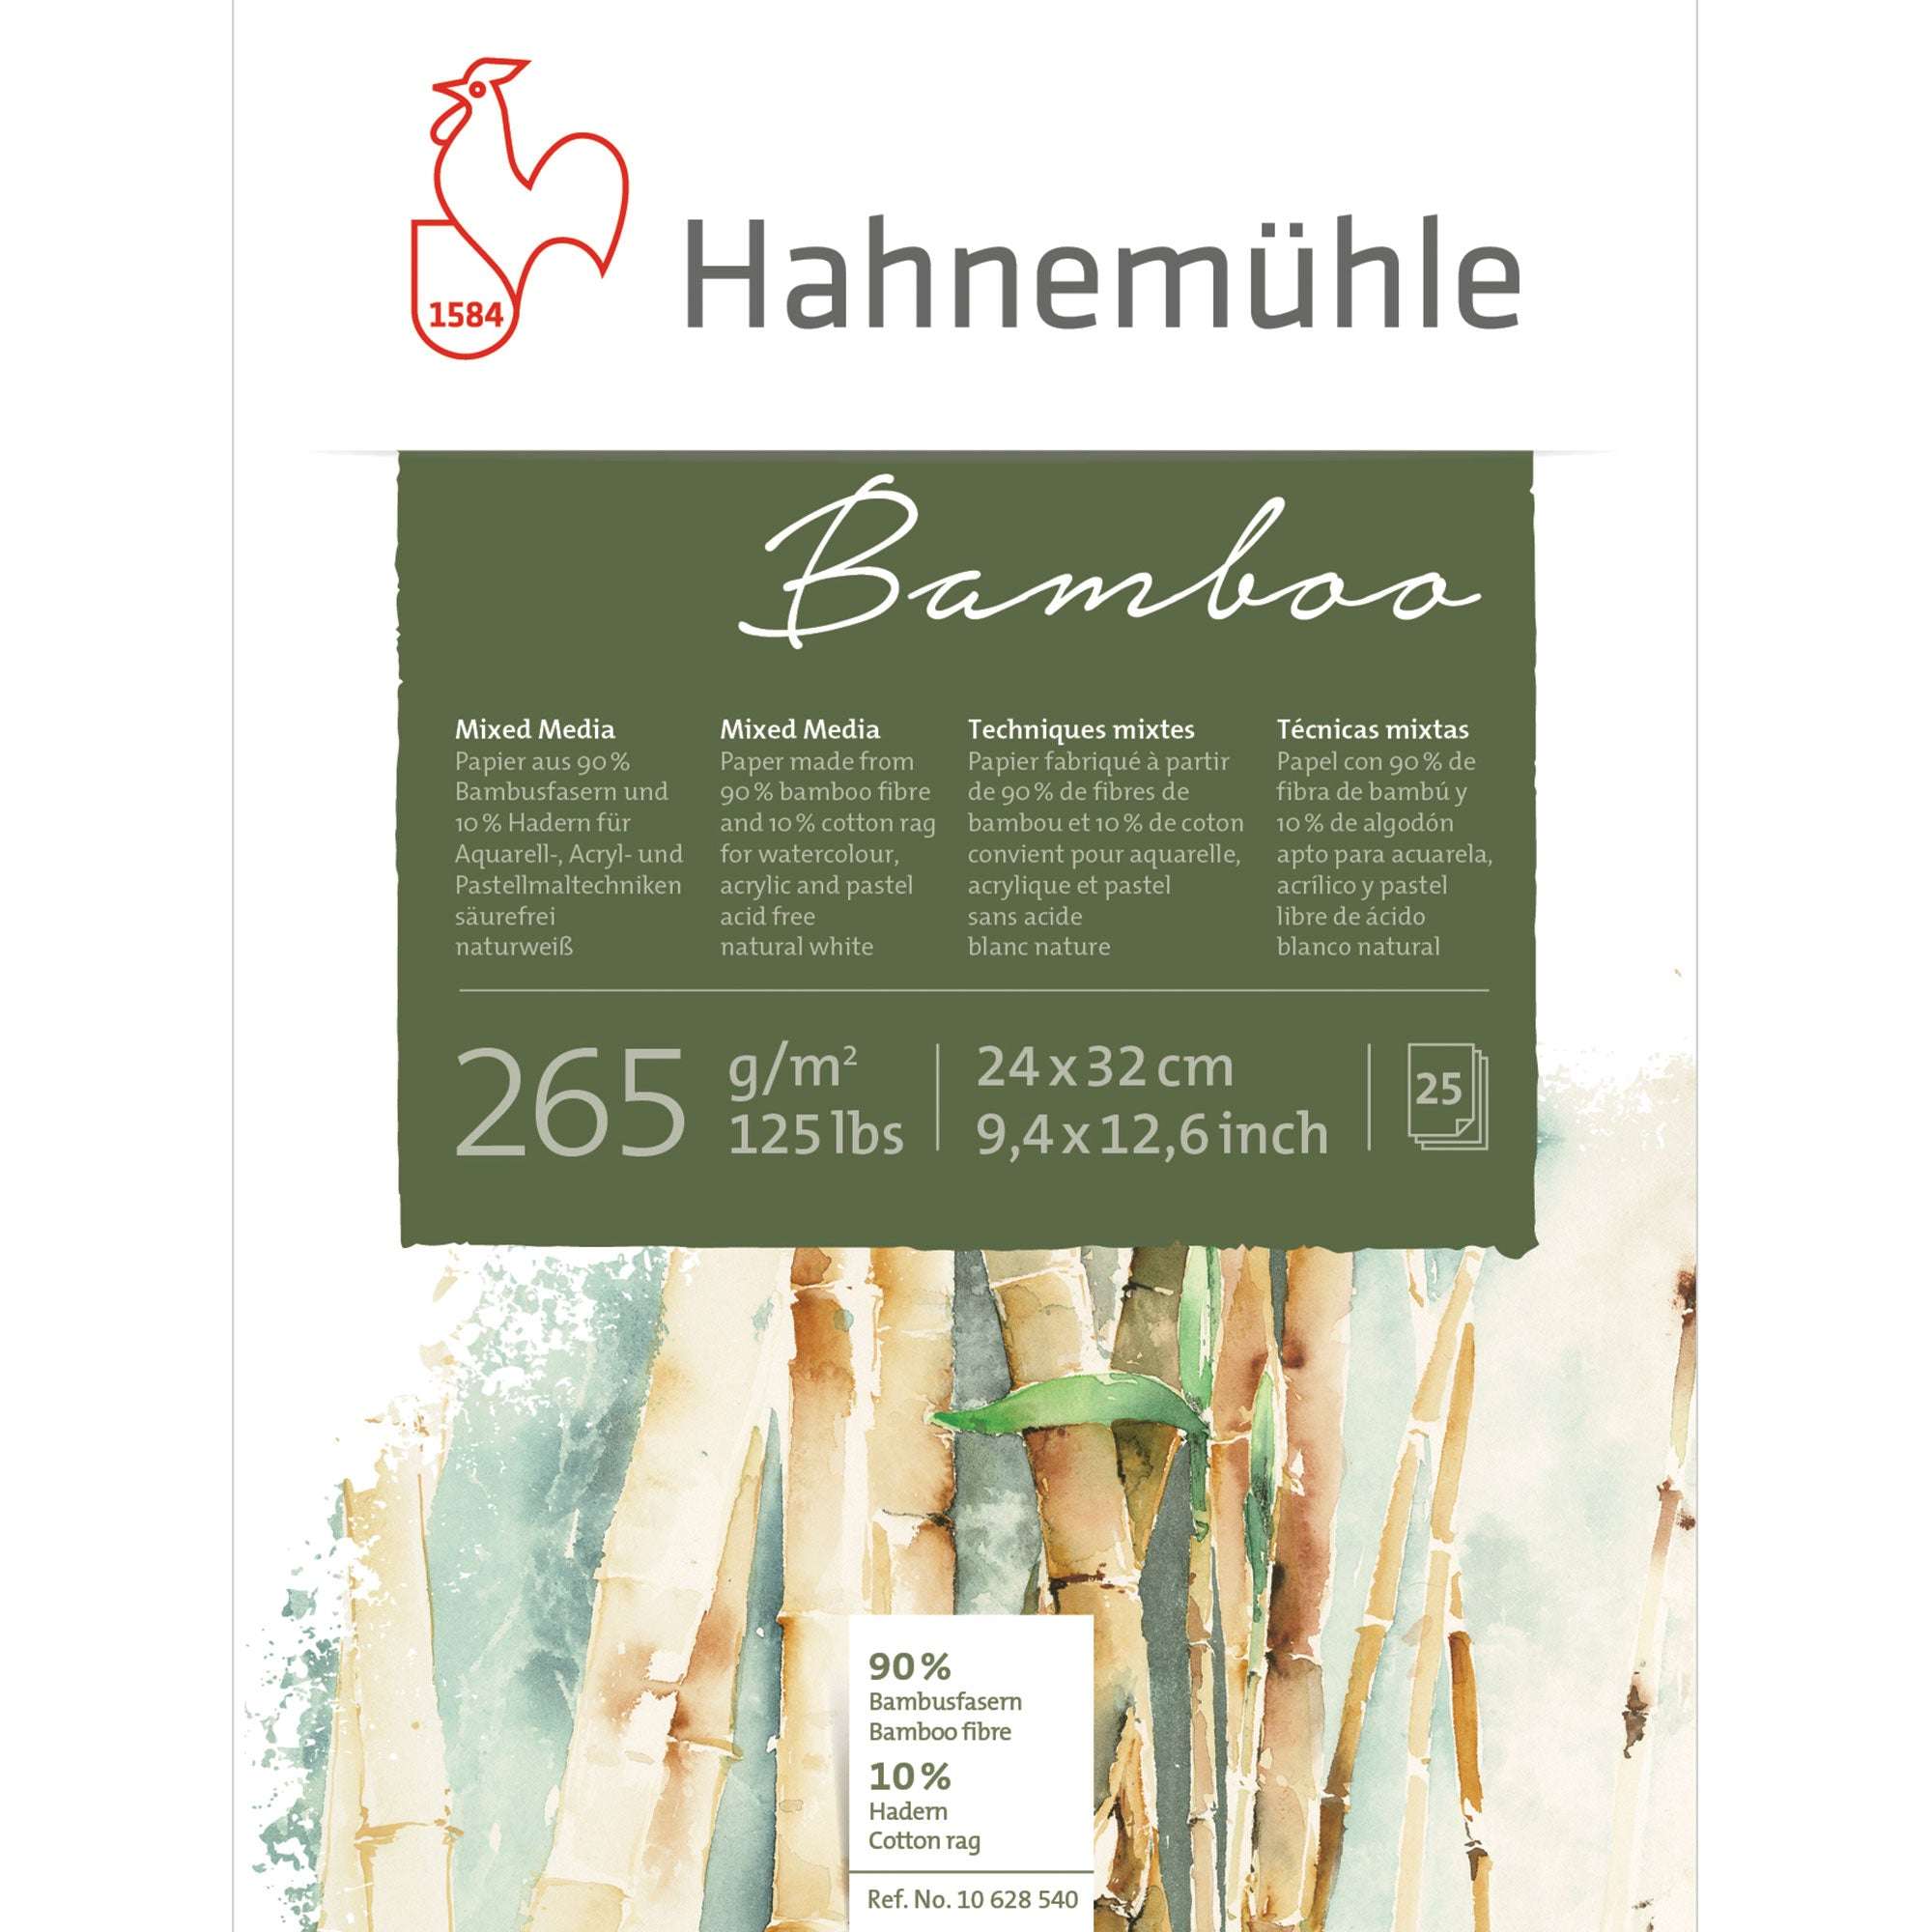 Hahnemühle Bamboo Mixed Media Paper Pads - 265gsm (125lbs)